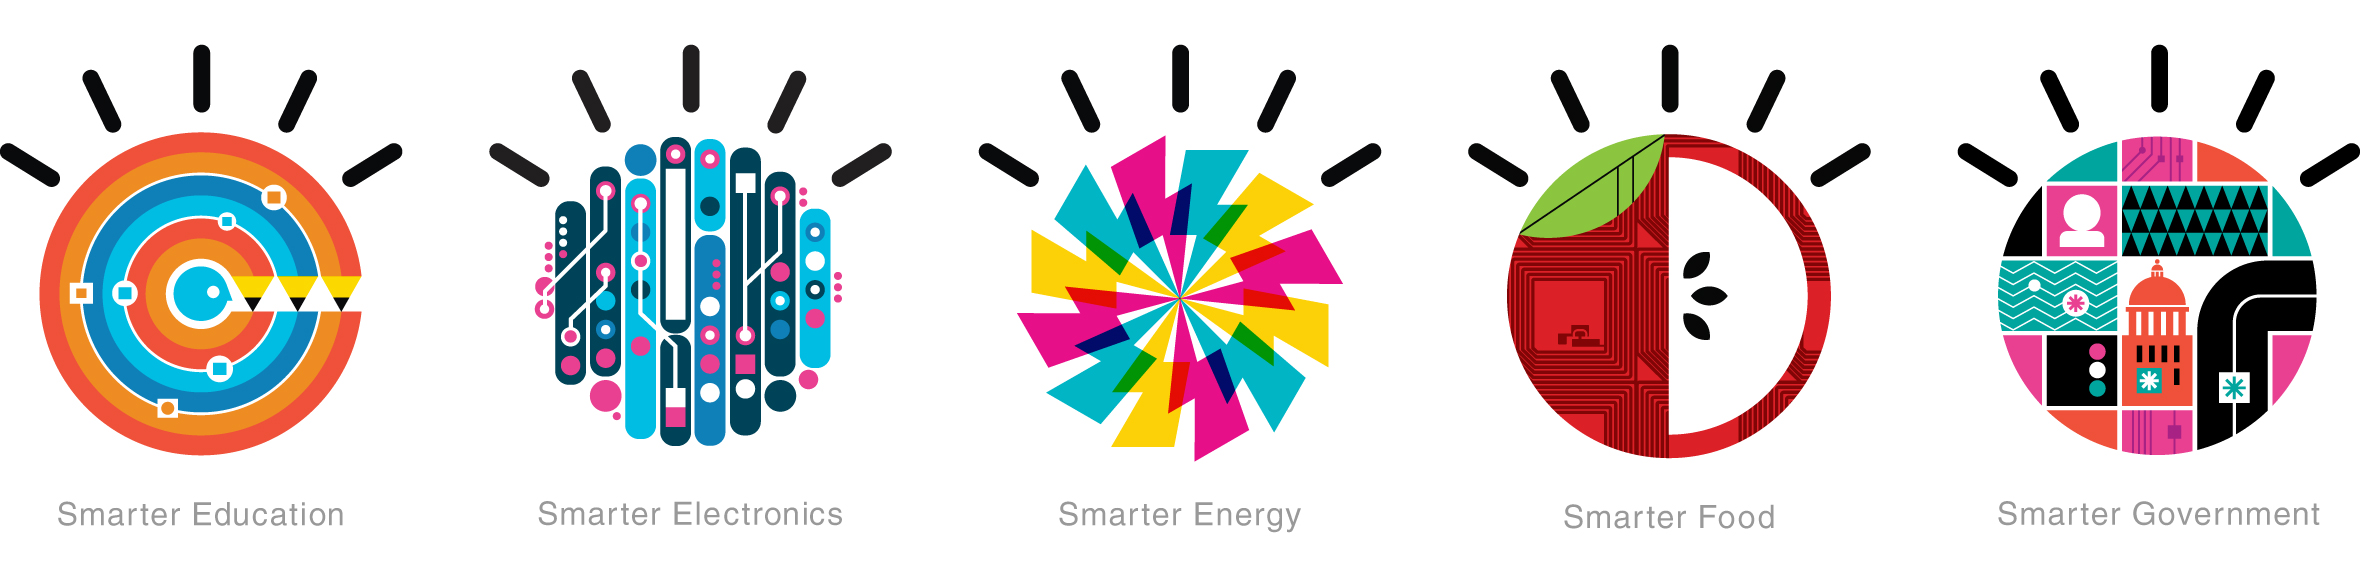 IBM Smarter Planet visual language designed by Office-006